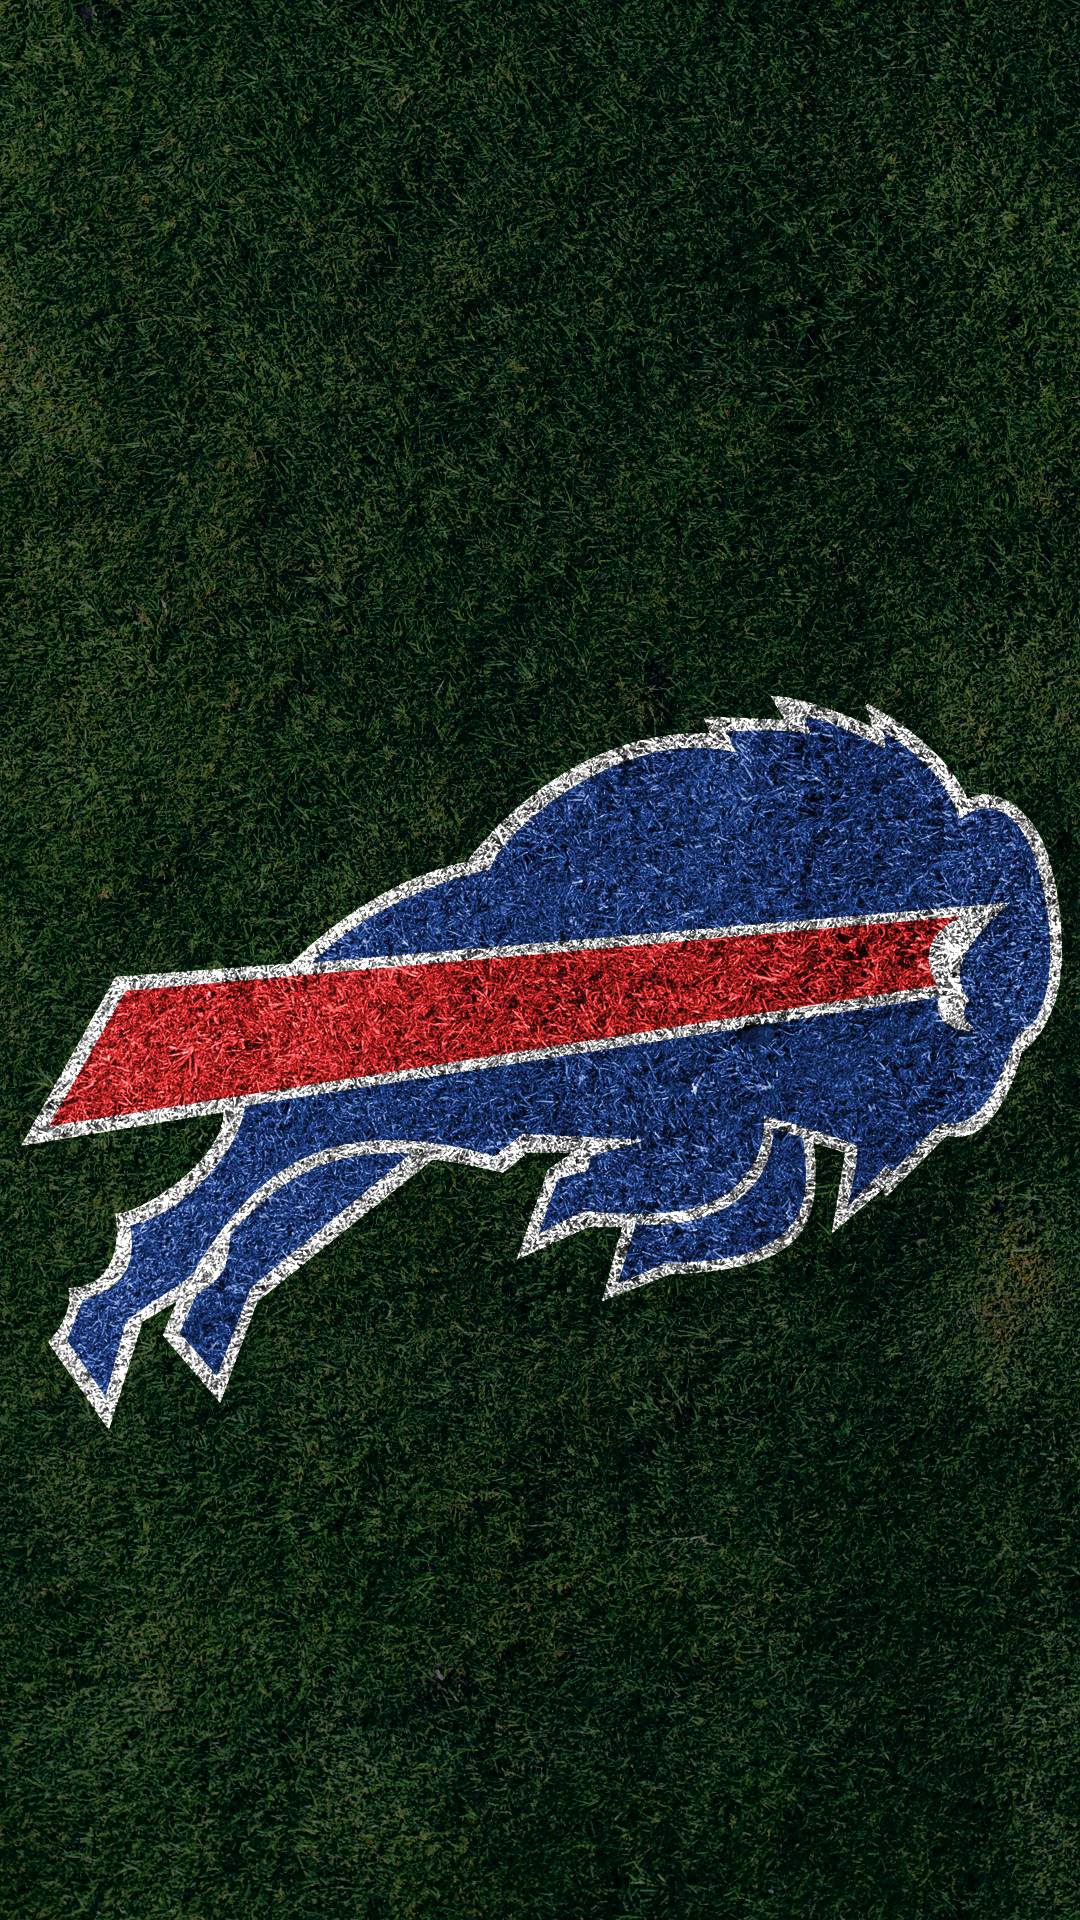 72 Buffalo Bills Wallpaper Screensaver